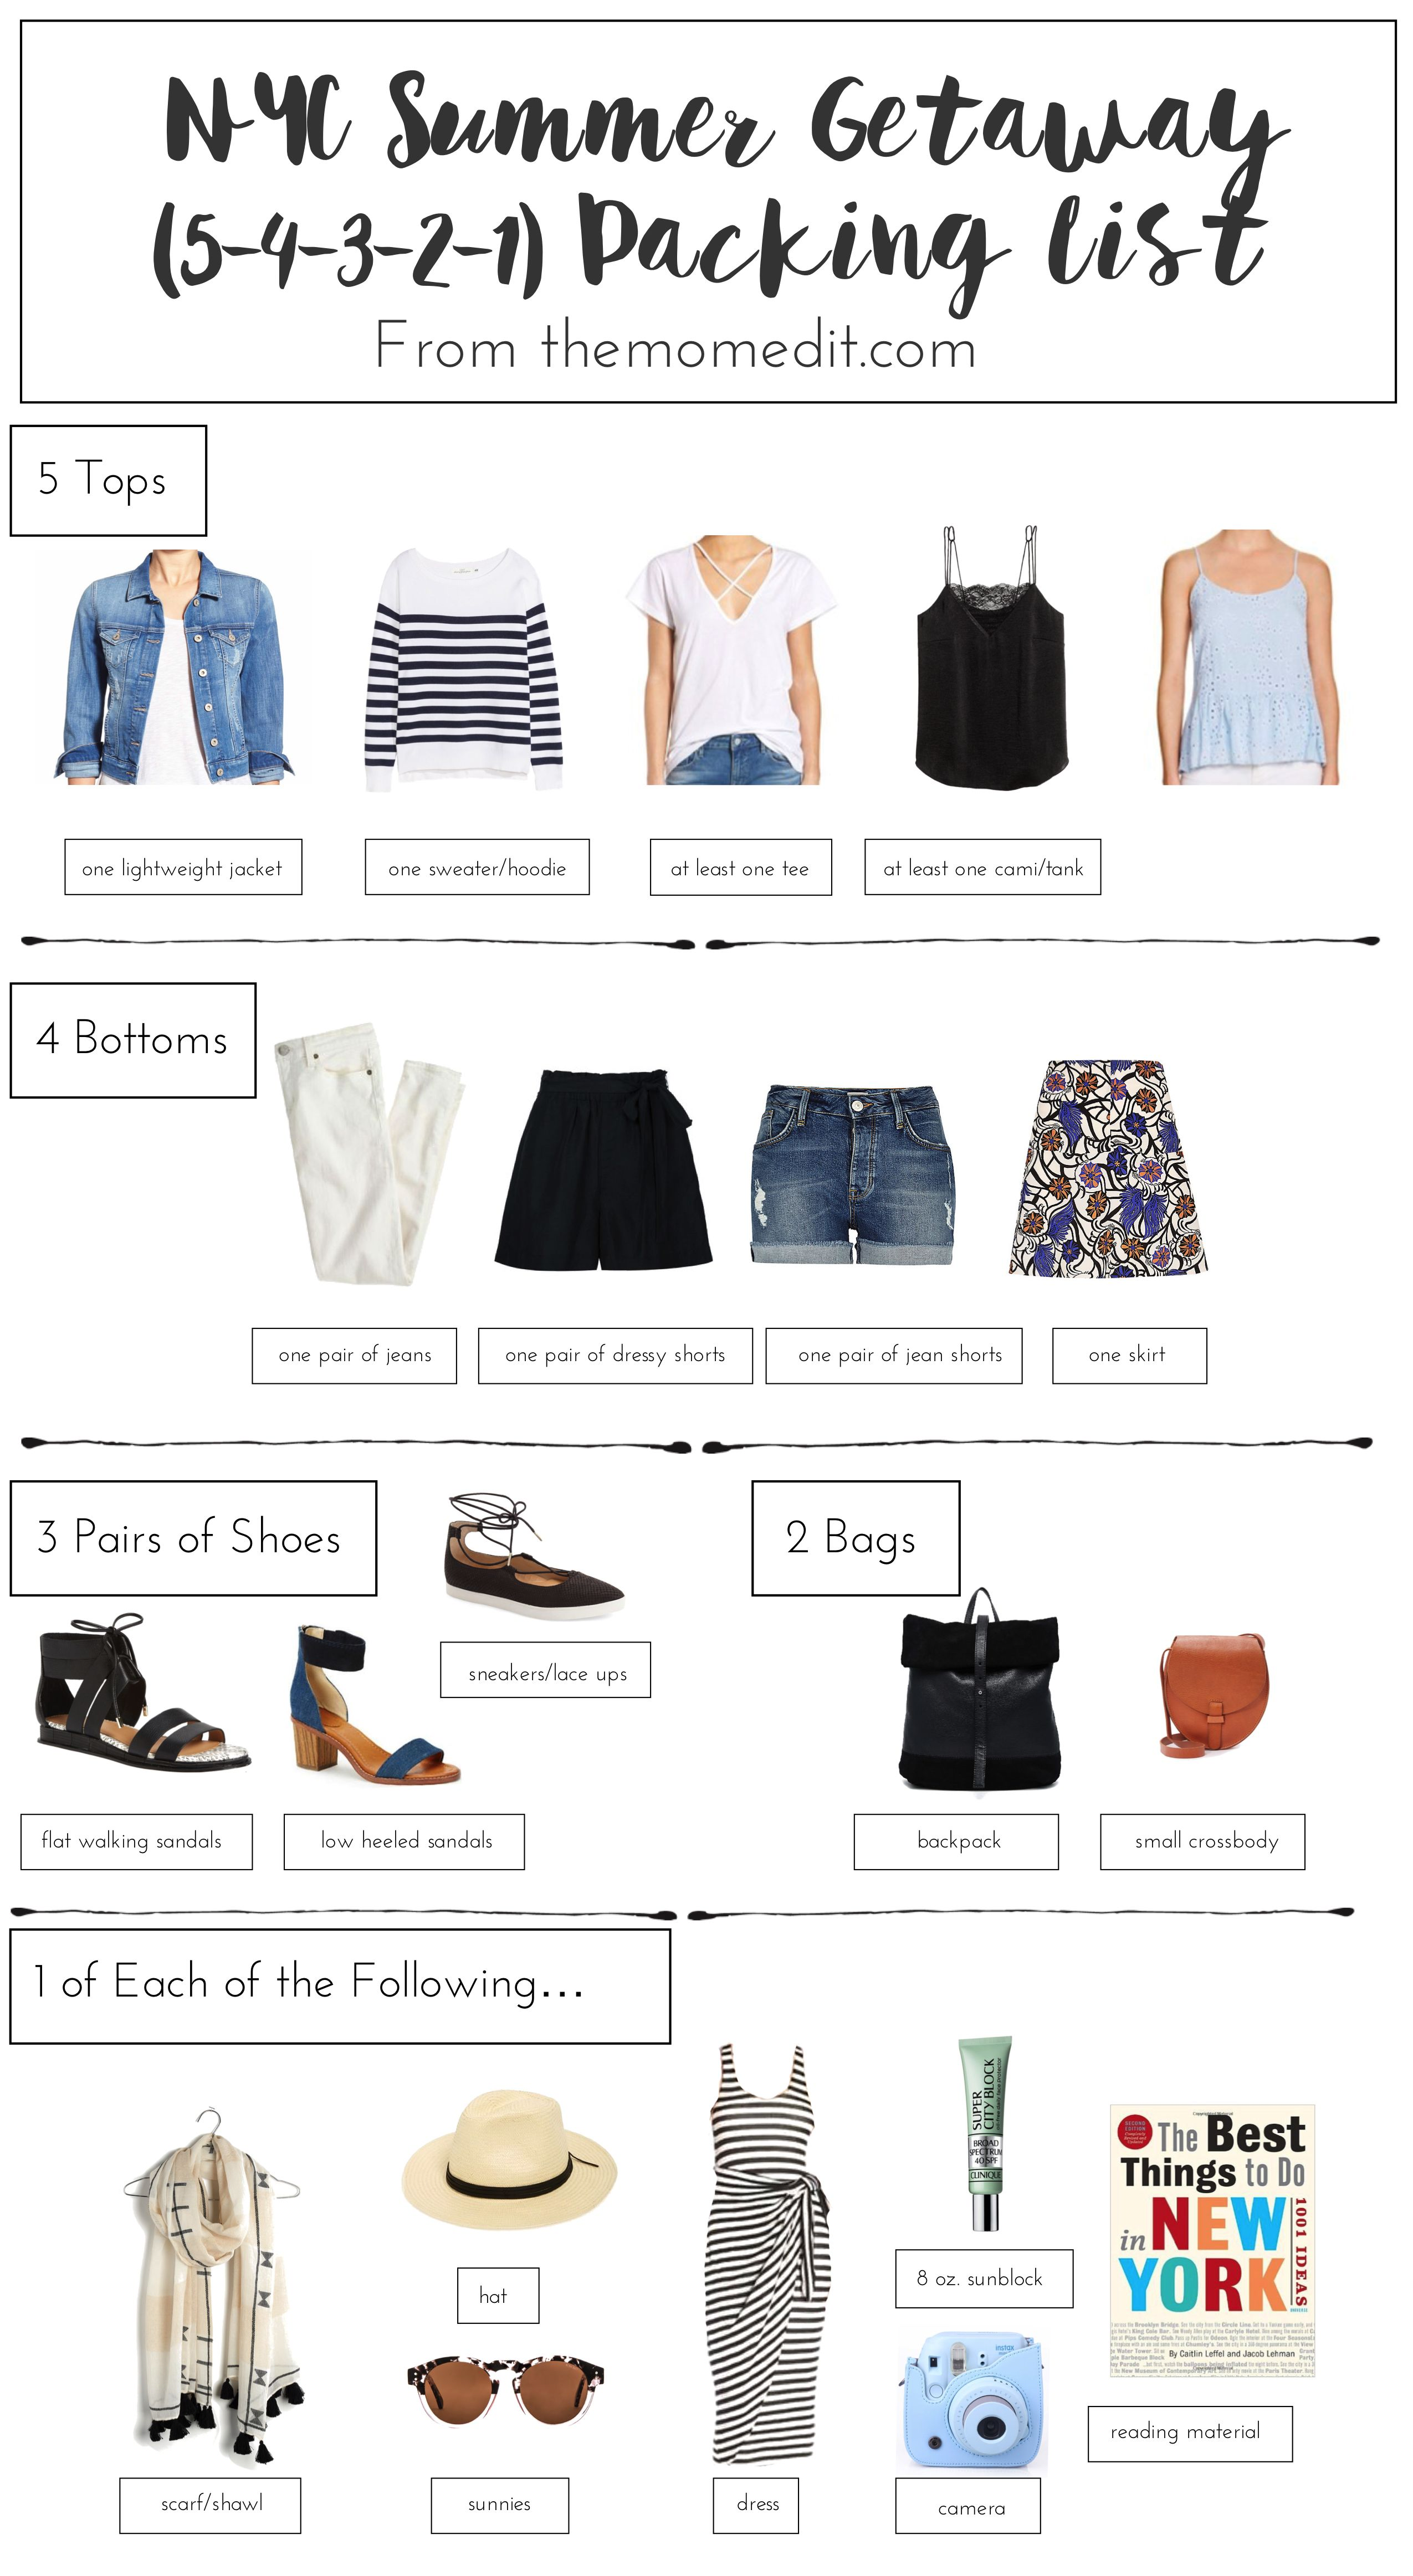 Best way to fold clothes for a trip - A Packing List For A Girls Only Summer Getaway Trip To Nyc